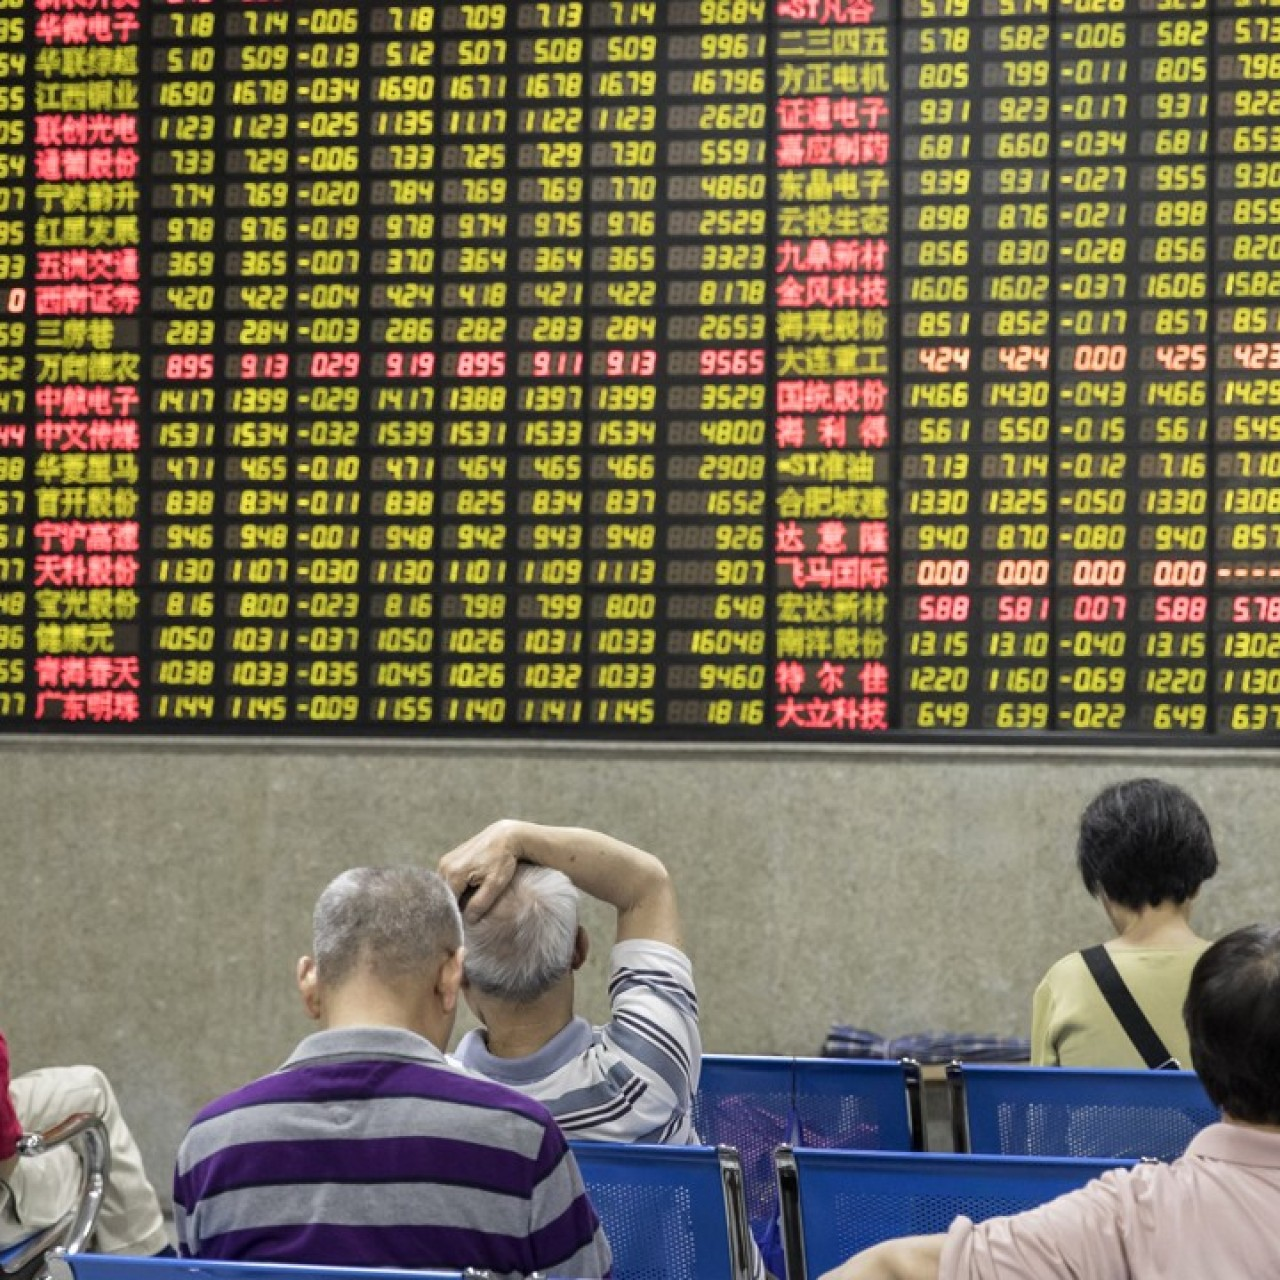 Global investors snap up Chinese stocks on last trading day